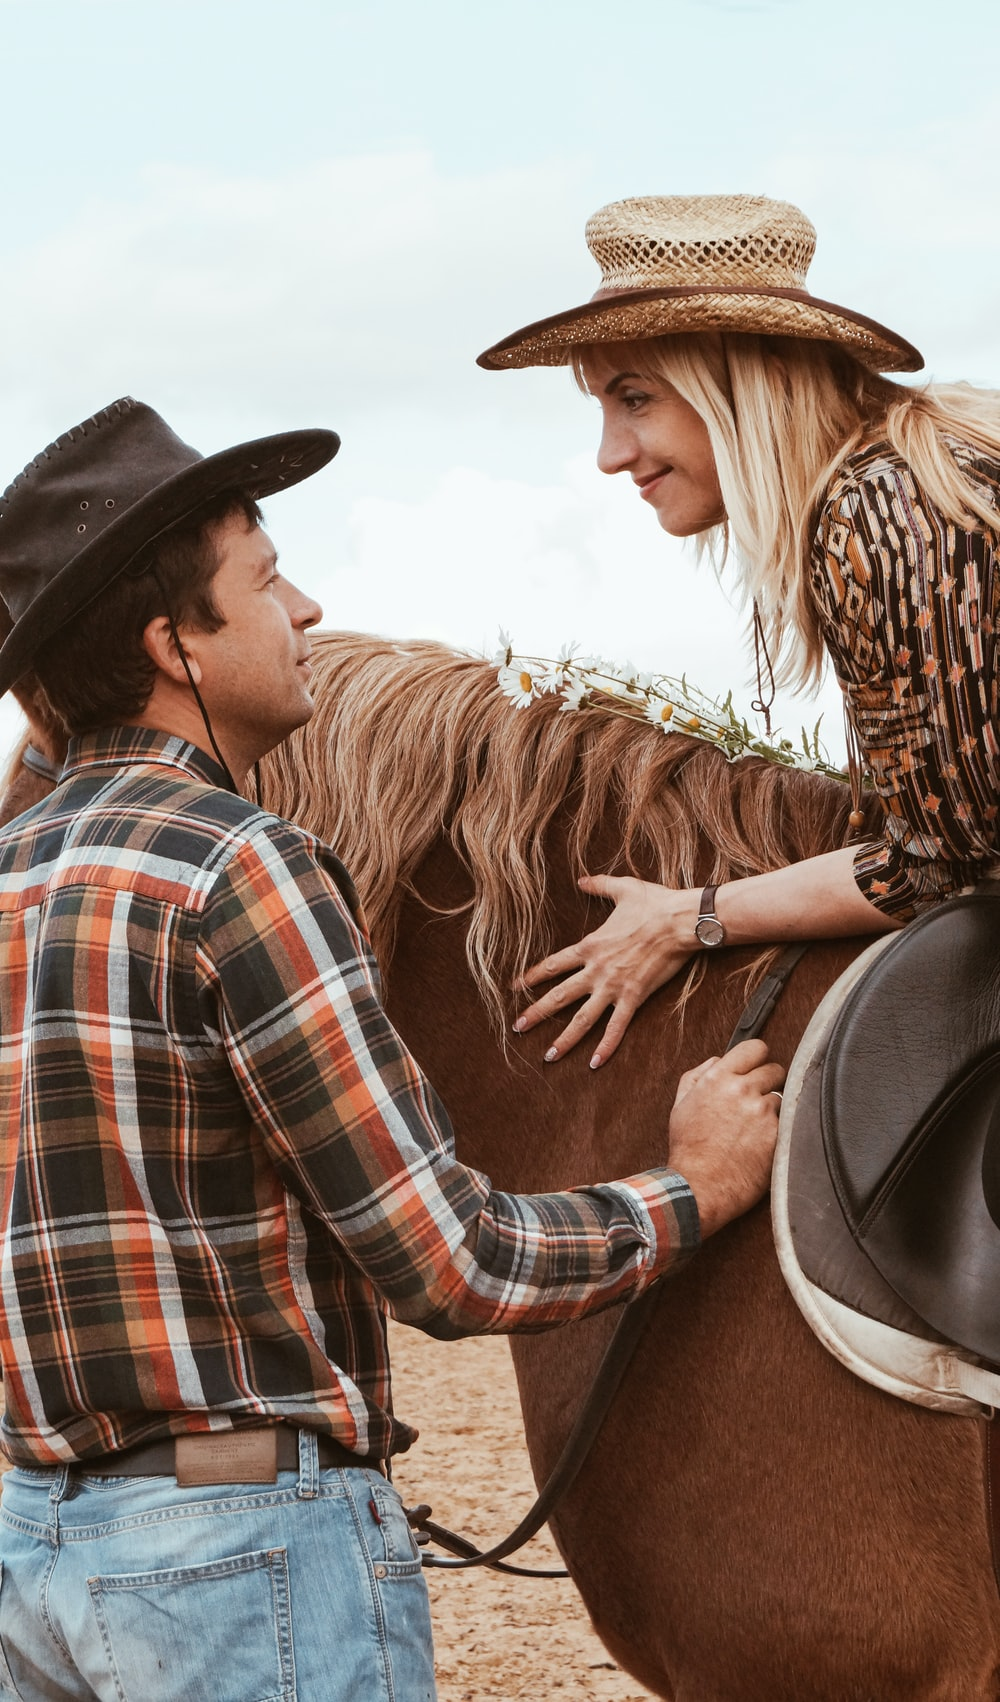 man in blue white and red plaid dress shirt and woman in brown cowboy hat